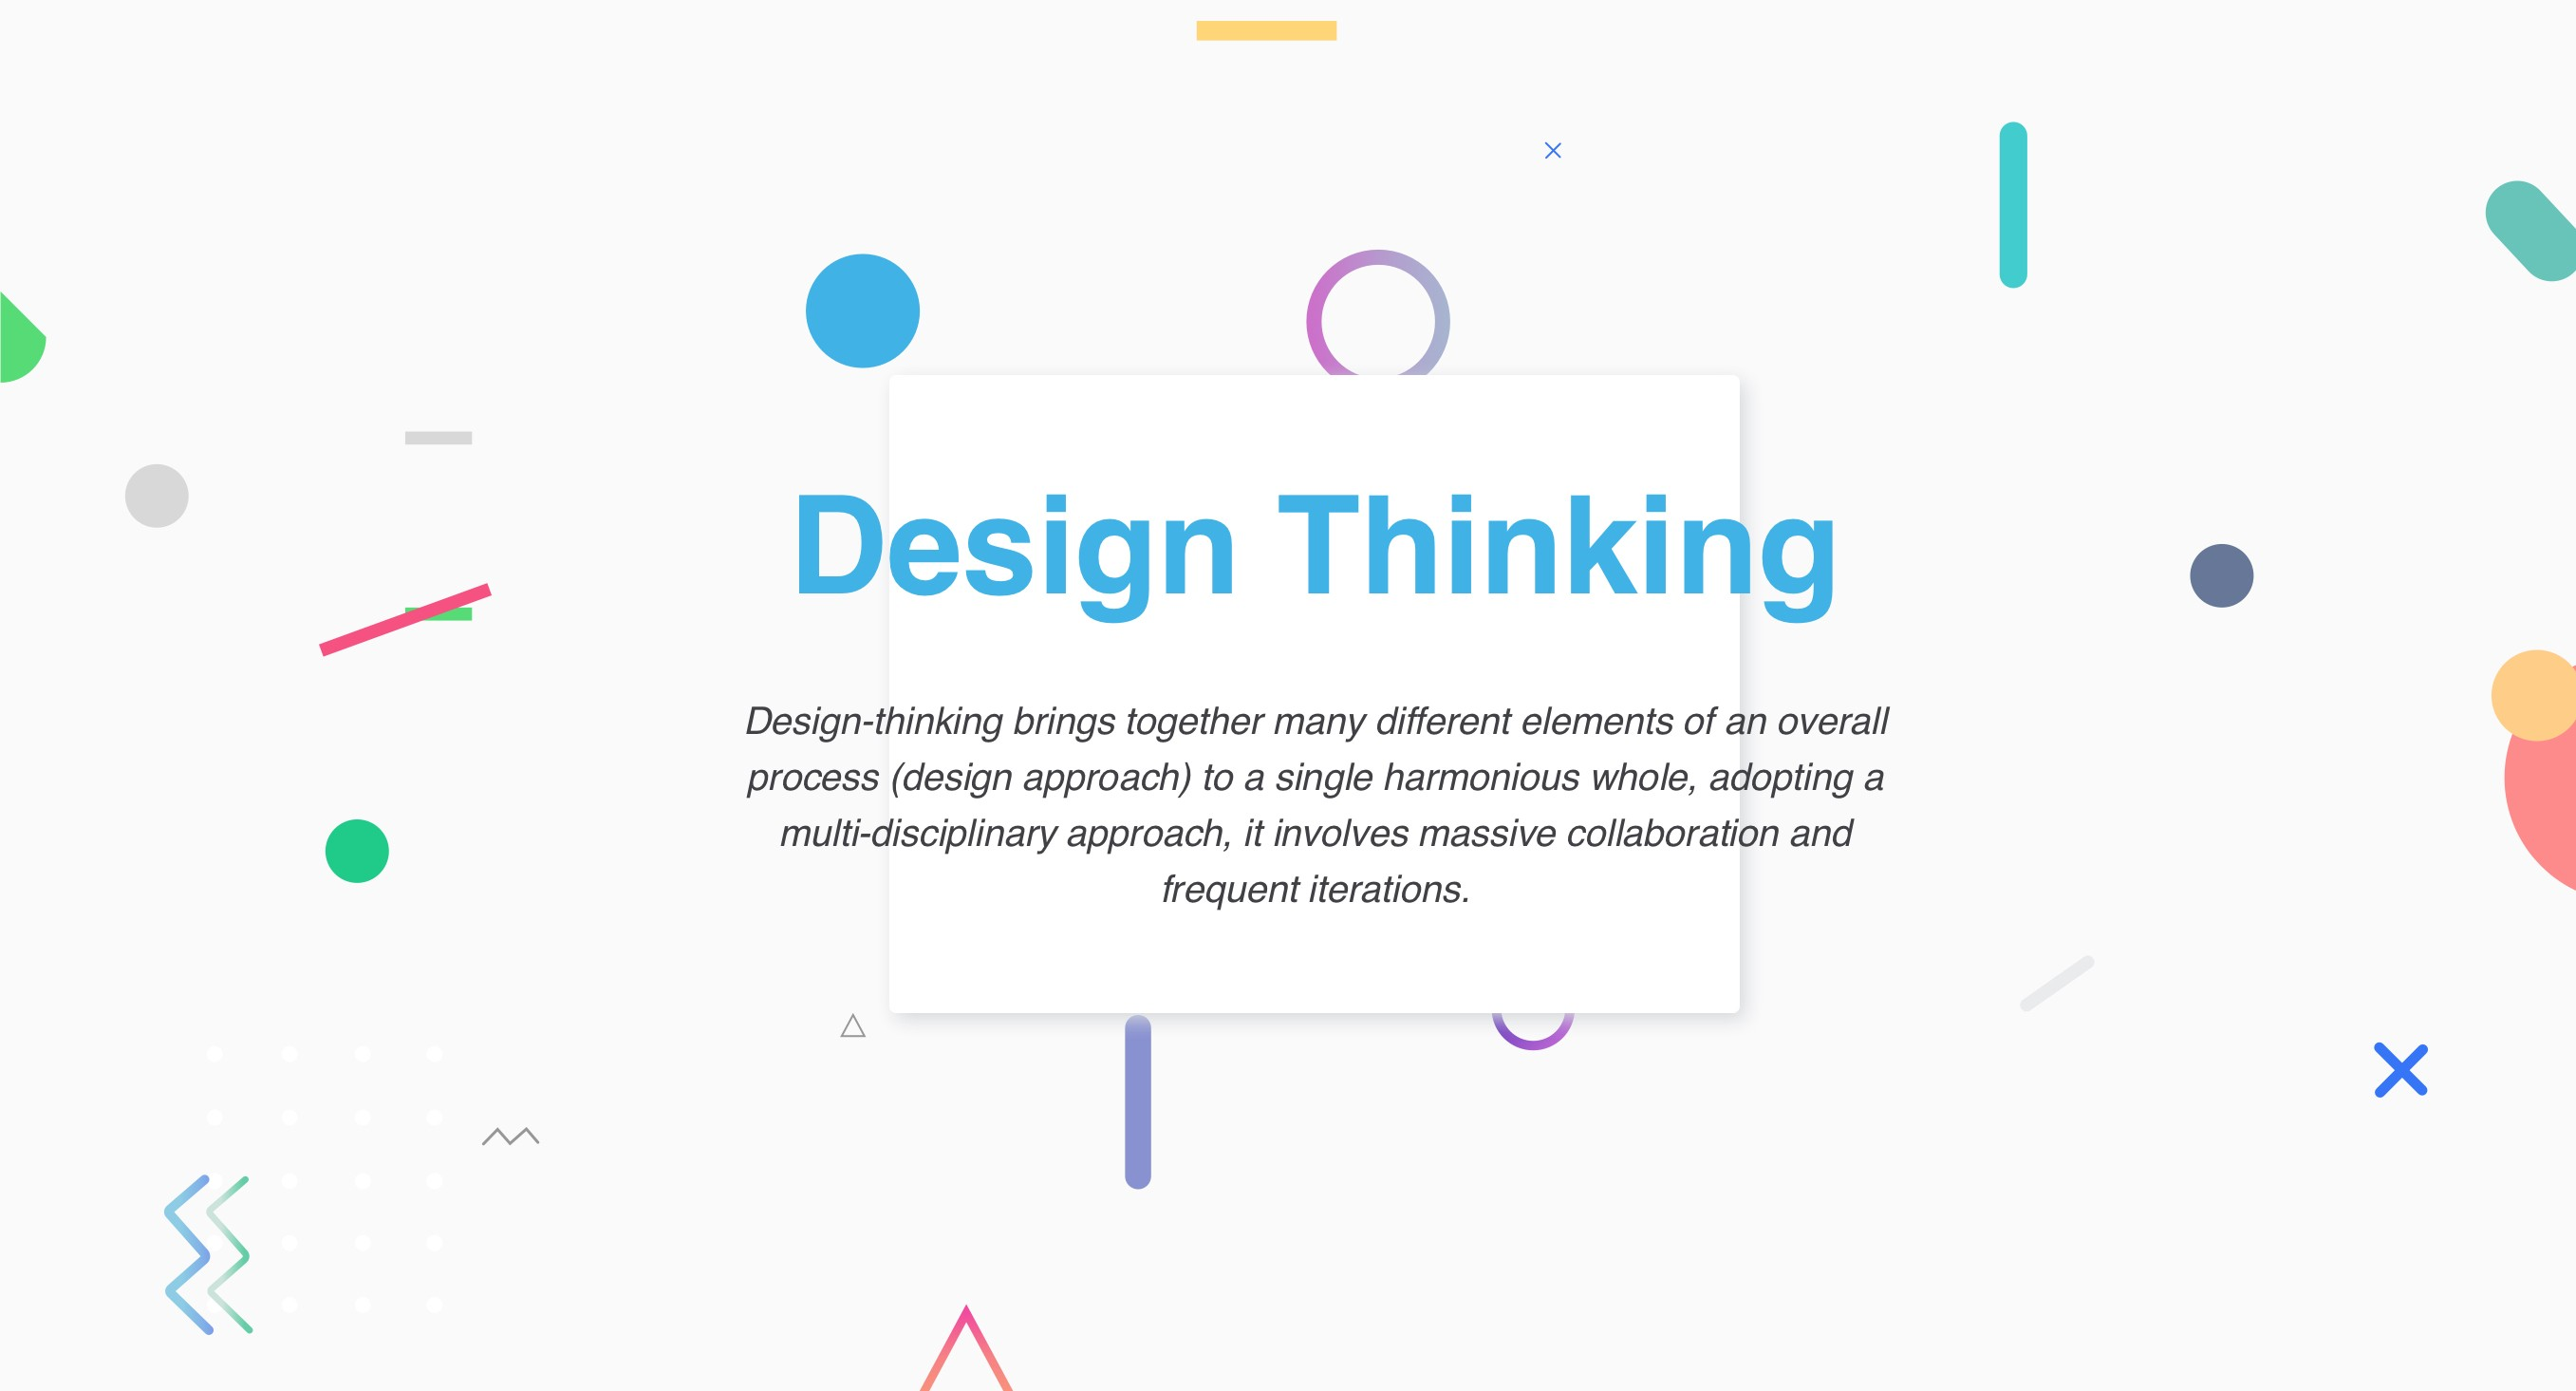 Design Thinking Not Just Another Buzzword